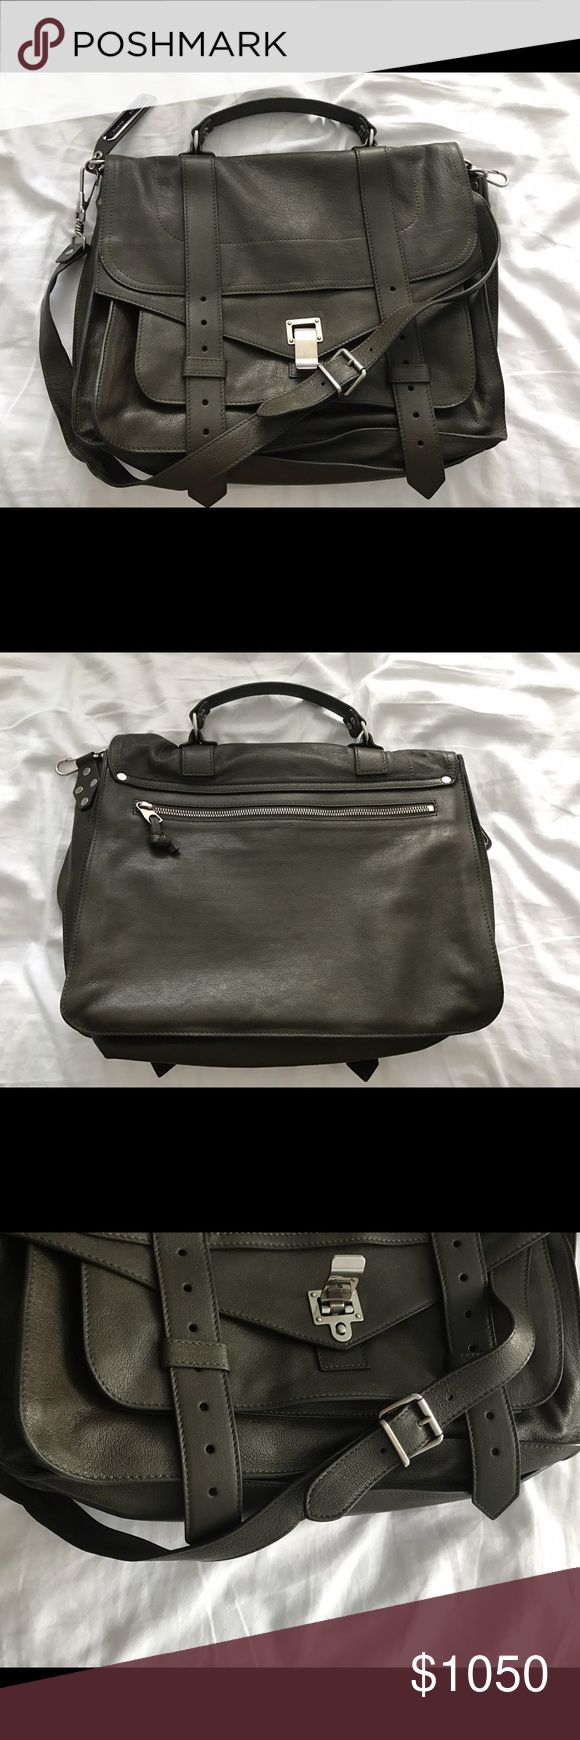 Proenza Schouler PS1 Large In like new condition. Military color, large size. Comes with original dust bag and tags. Proenza Schouler Bags Shoulder Bags